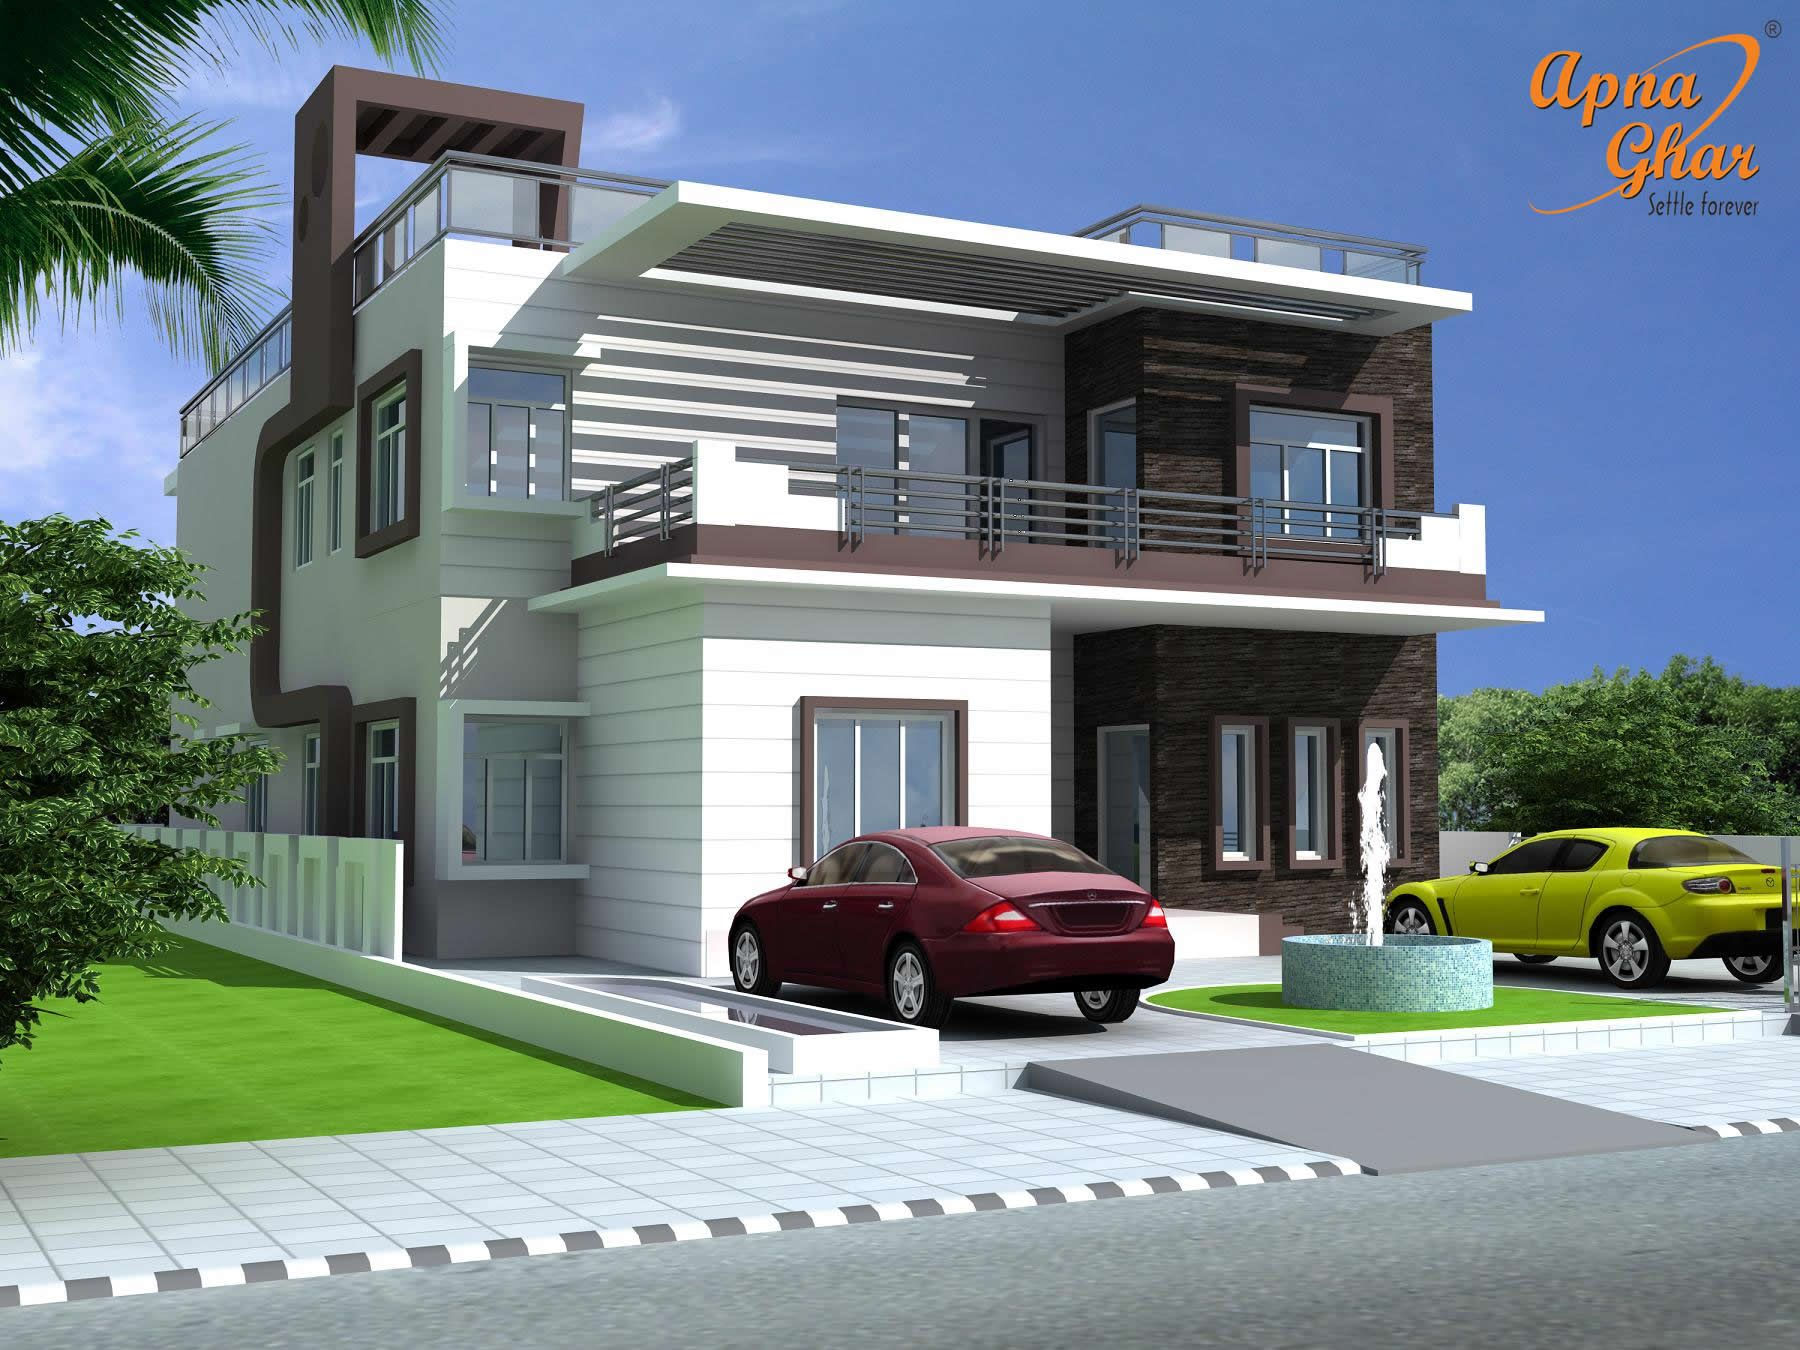 6 bedrooms duplex house design in 390m2 13m x 30m click link - Free Building Designs